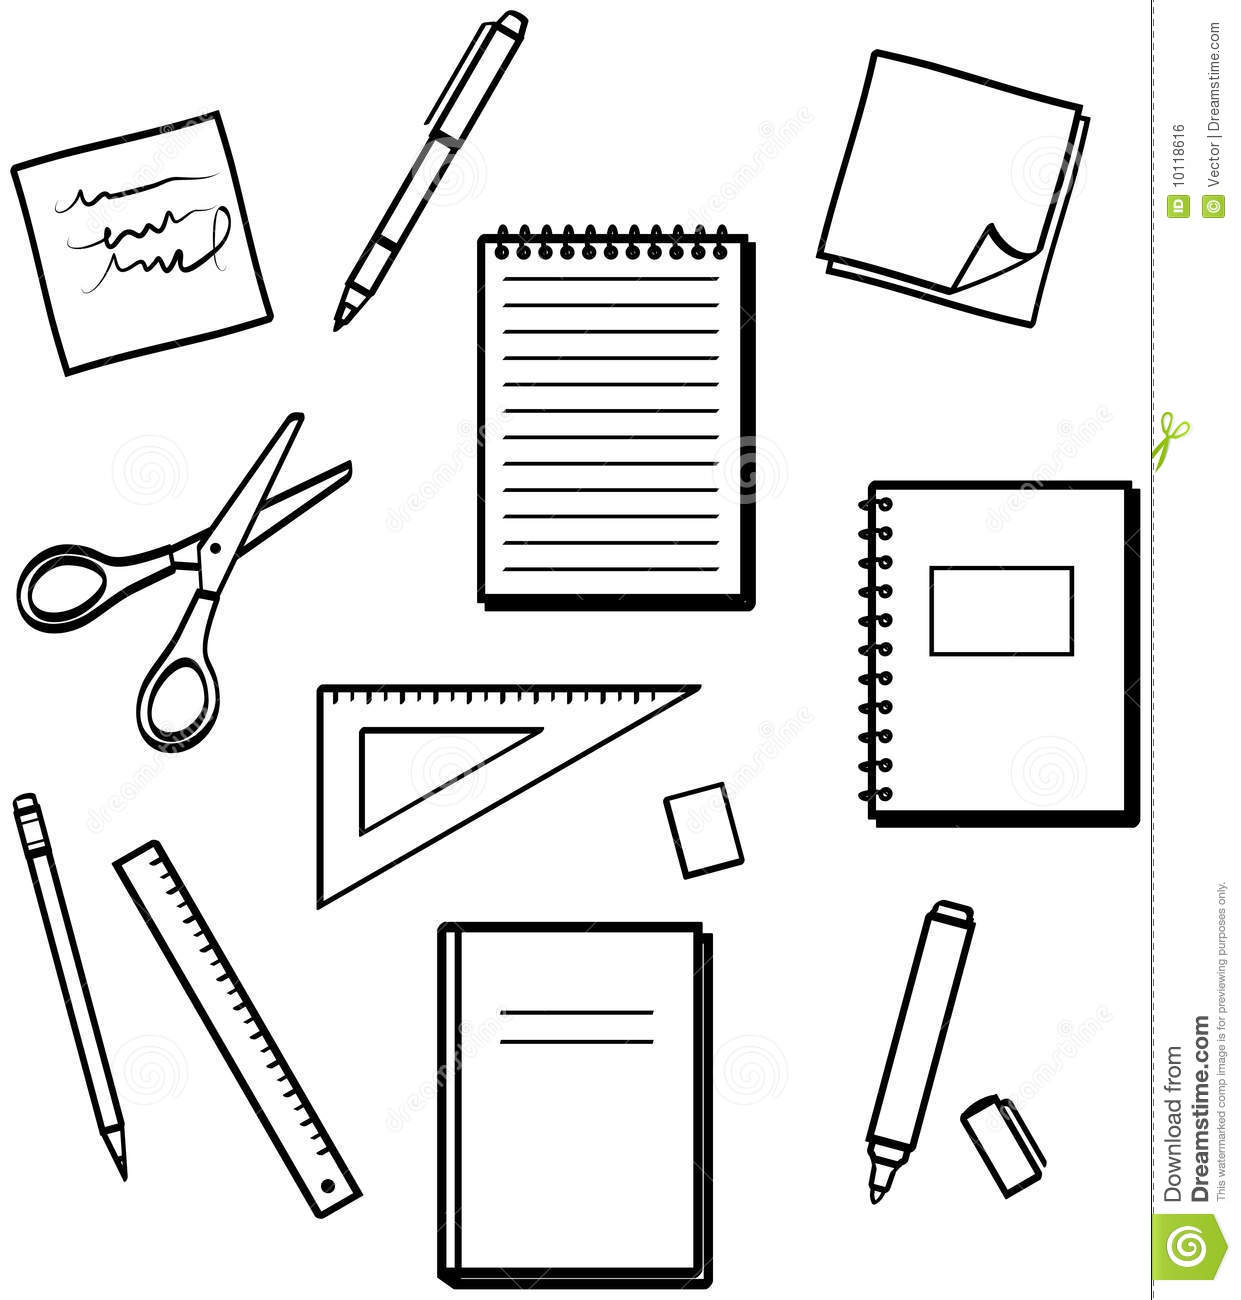 free office equipment clipart - photo #50